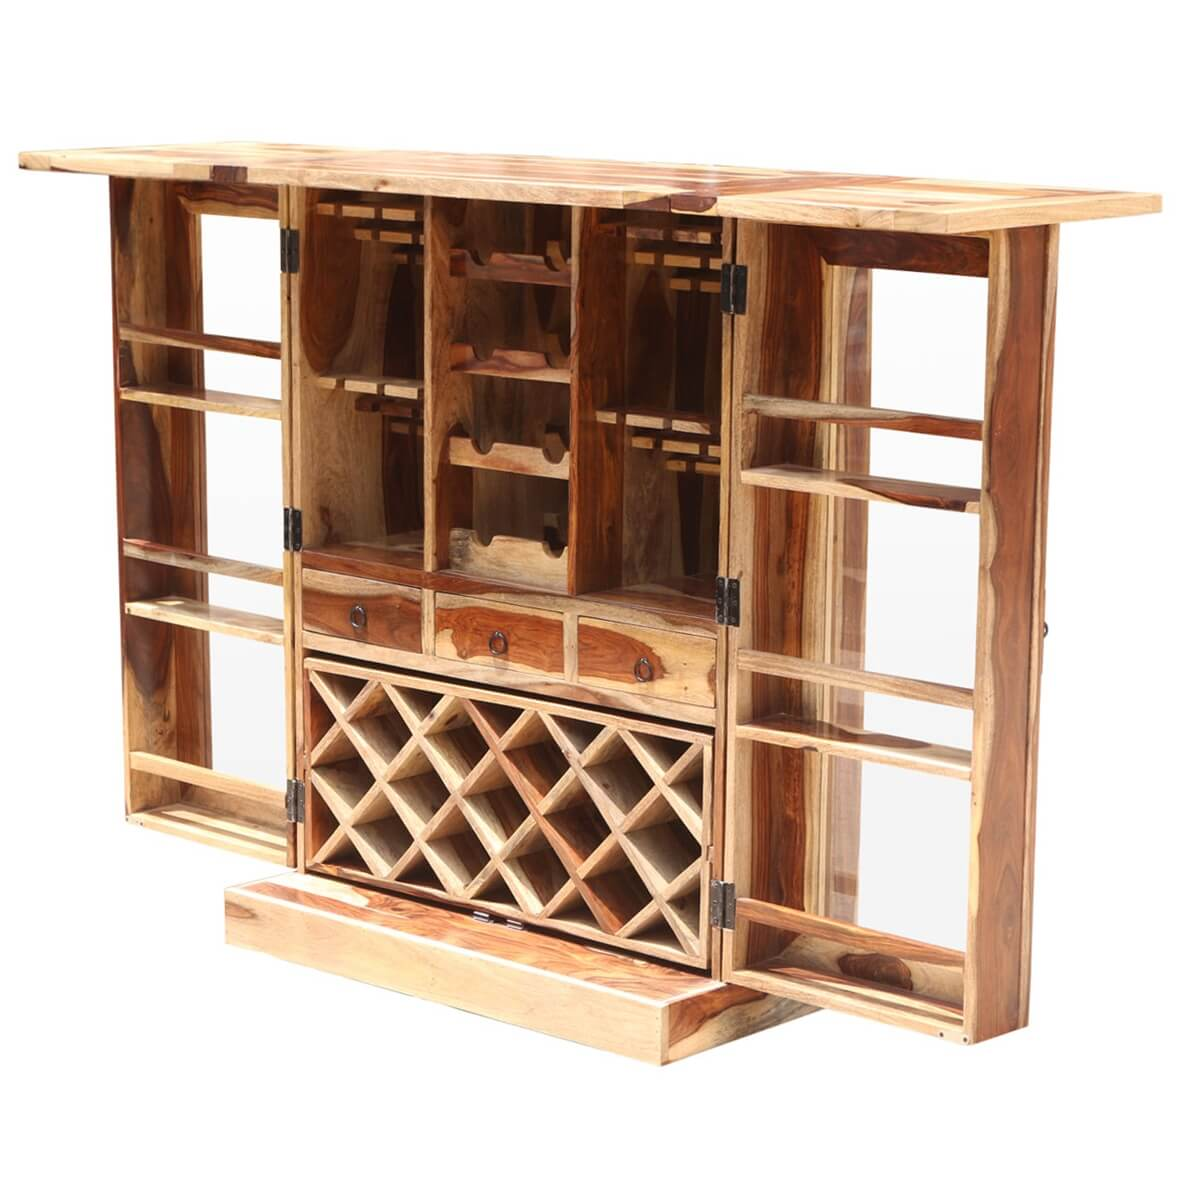 Lincoln Study Solid Wood Foldout Complete Wine Bar Liquor